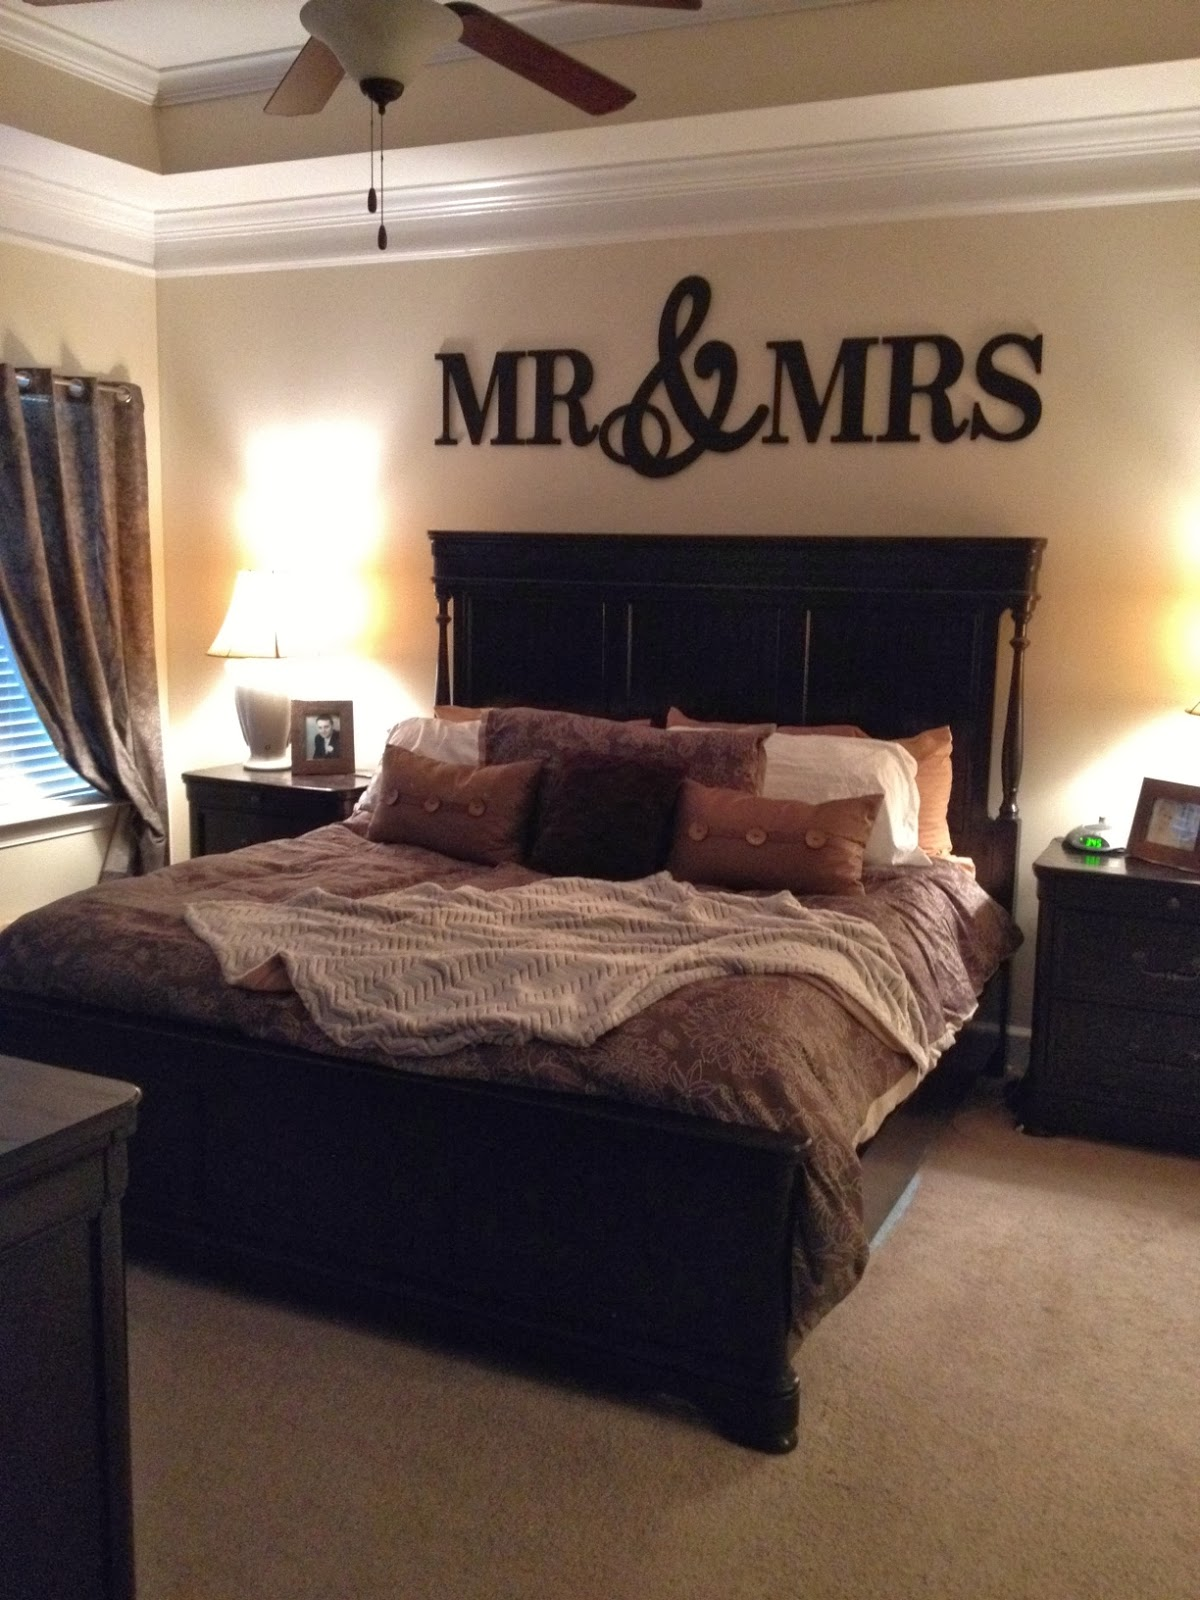 Simply the simmons mr mrs for Master bedroom wall decor